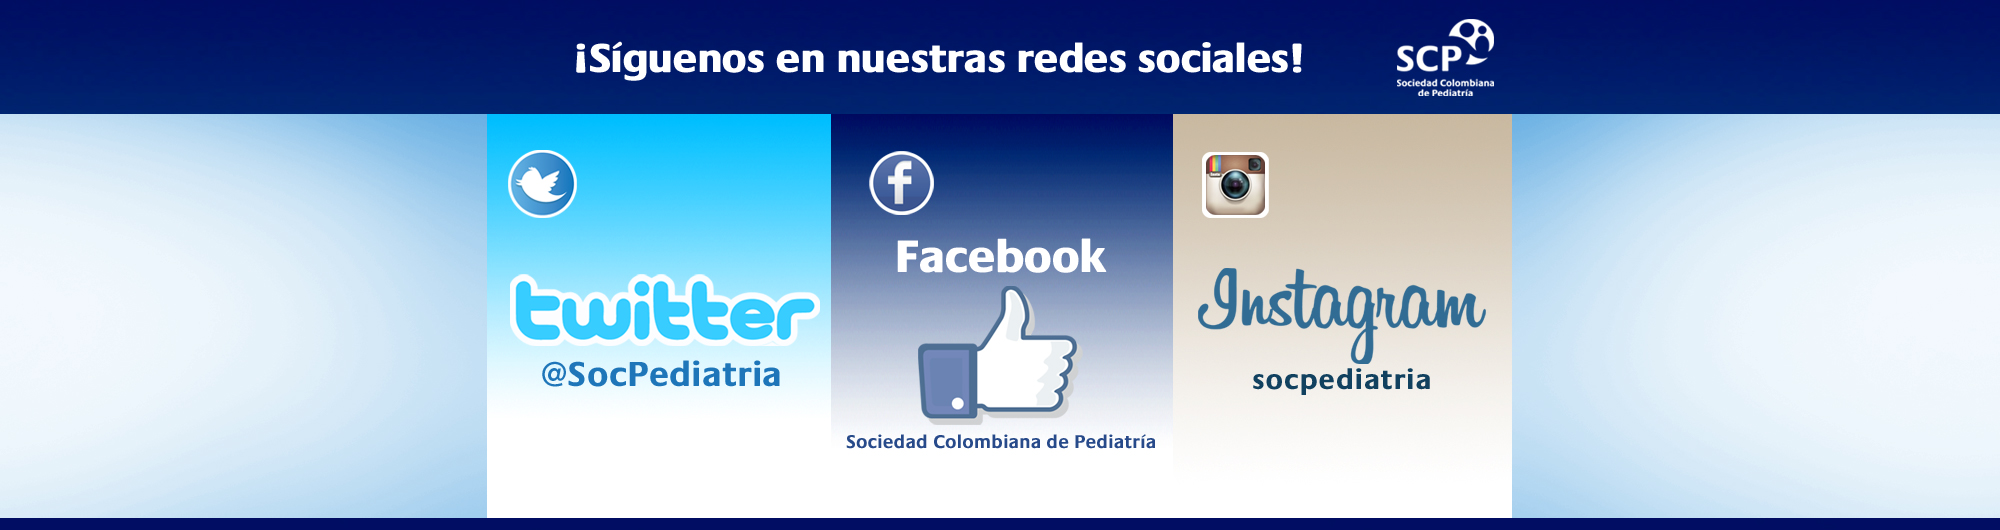 Banner-redes-sociales-SCP